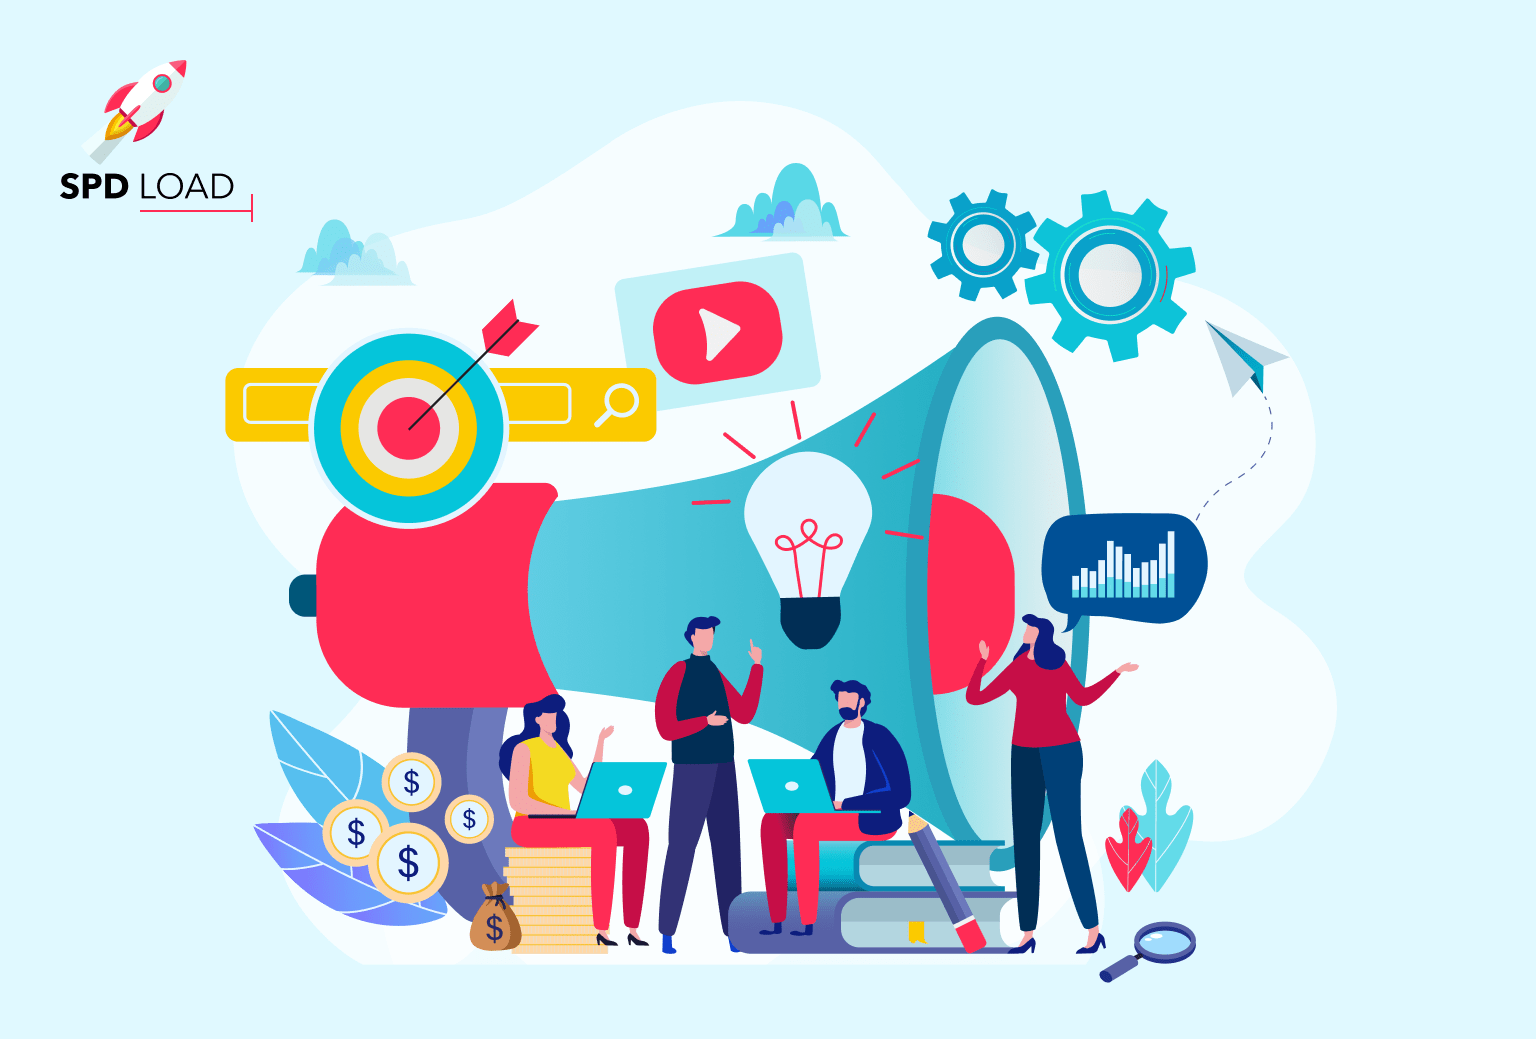 SpdLoad prepared an in-depth overview of digital marketing team structure